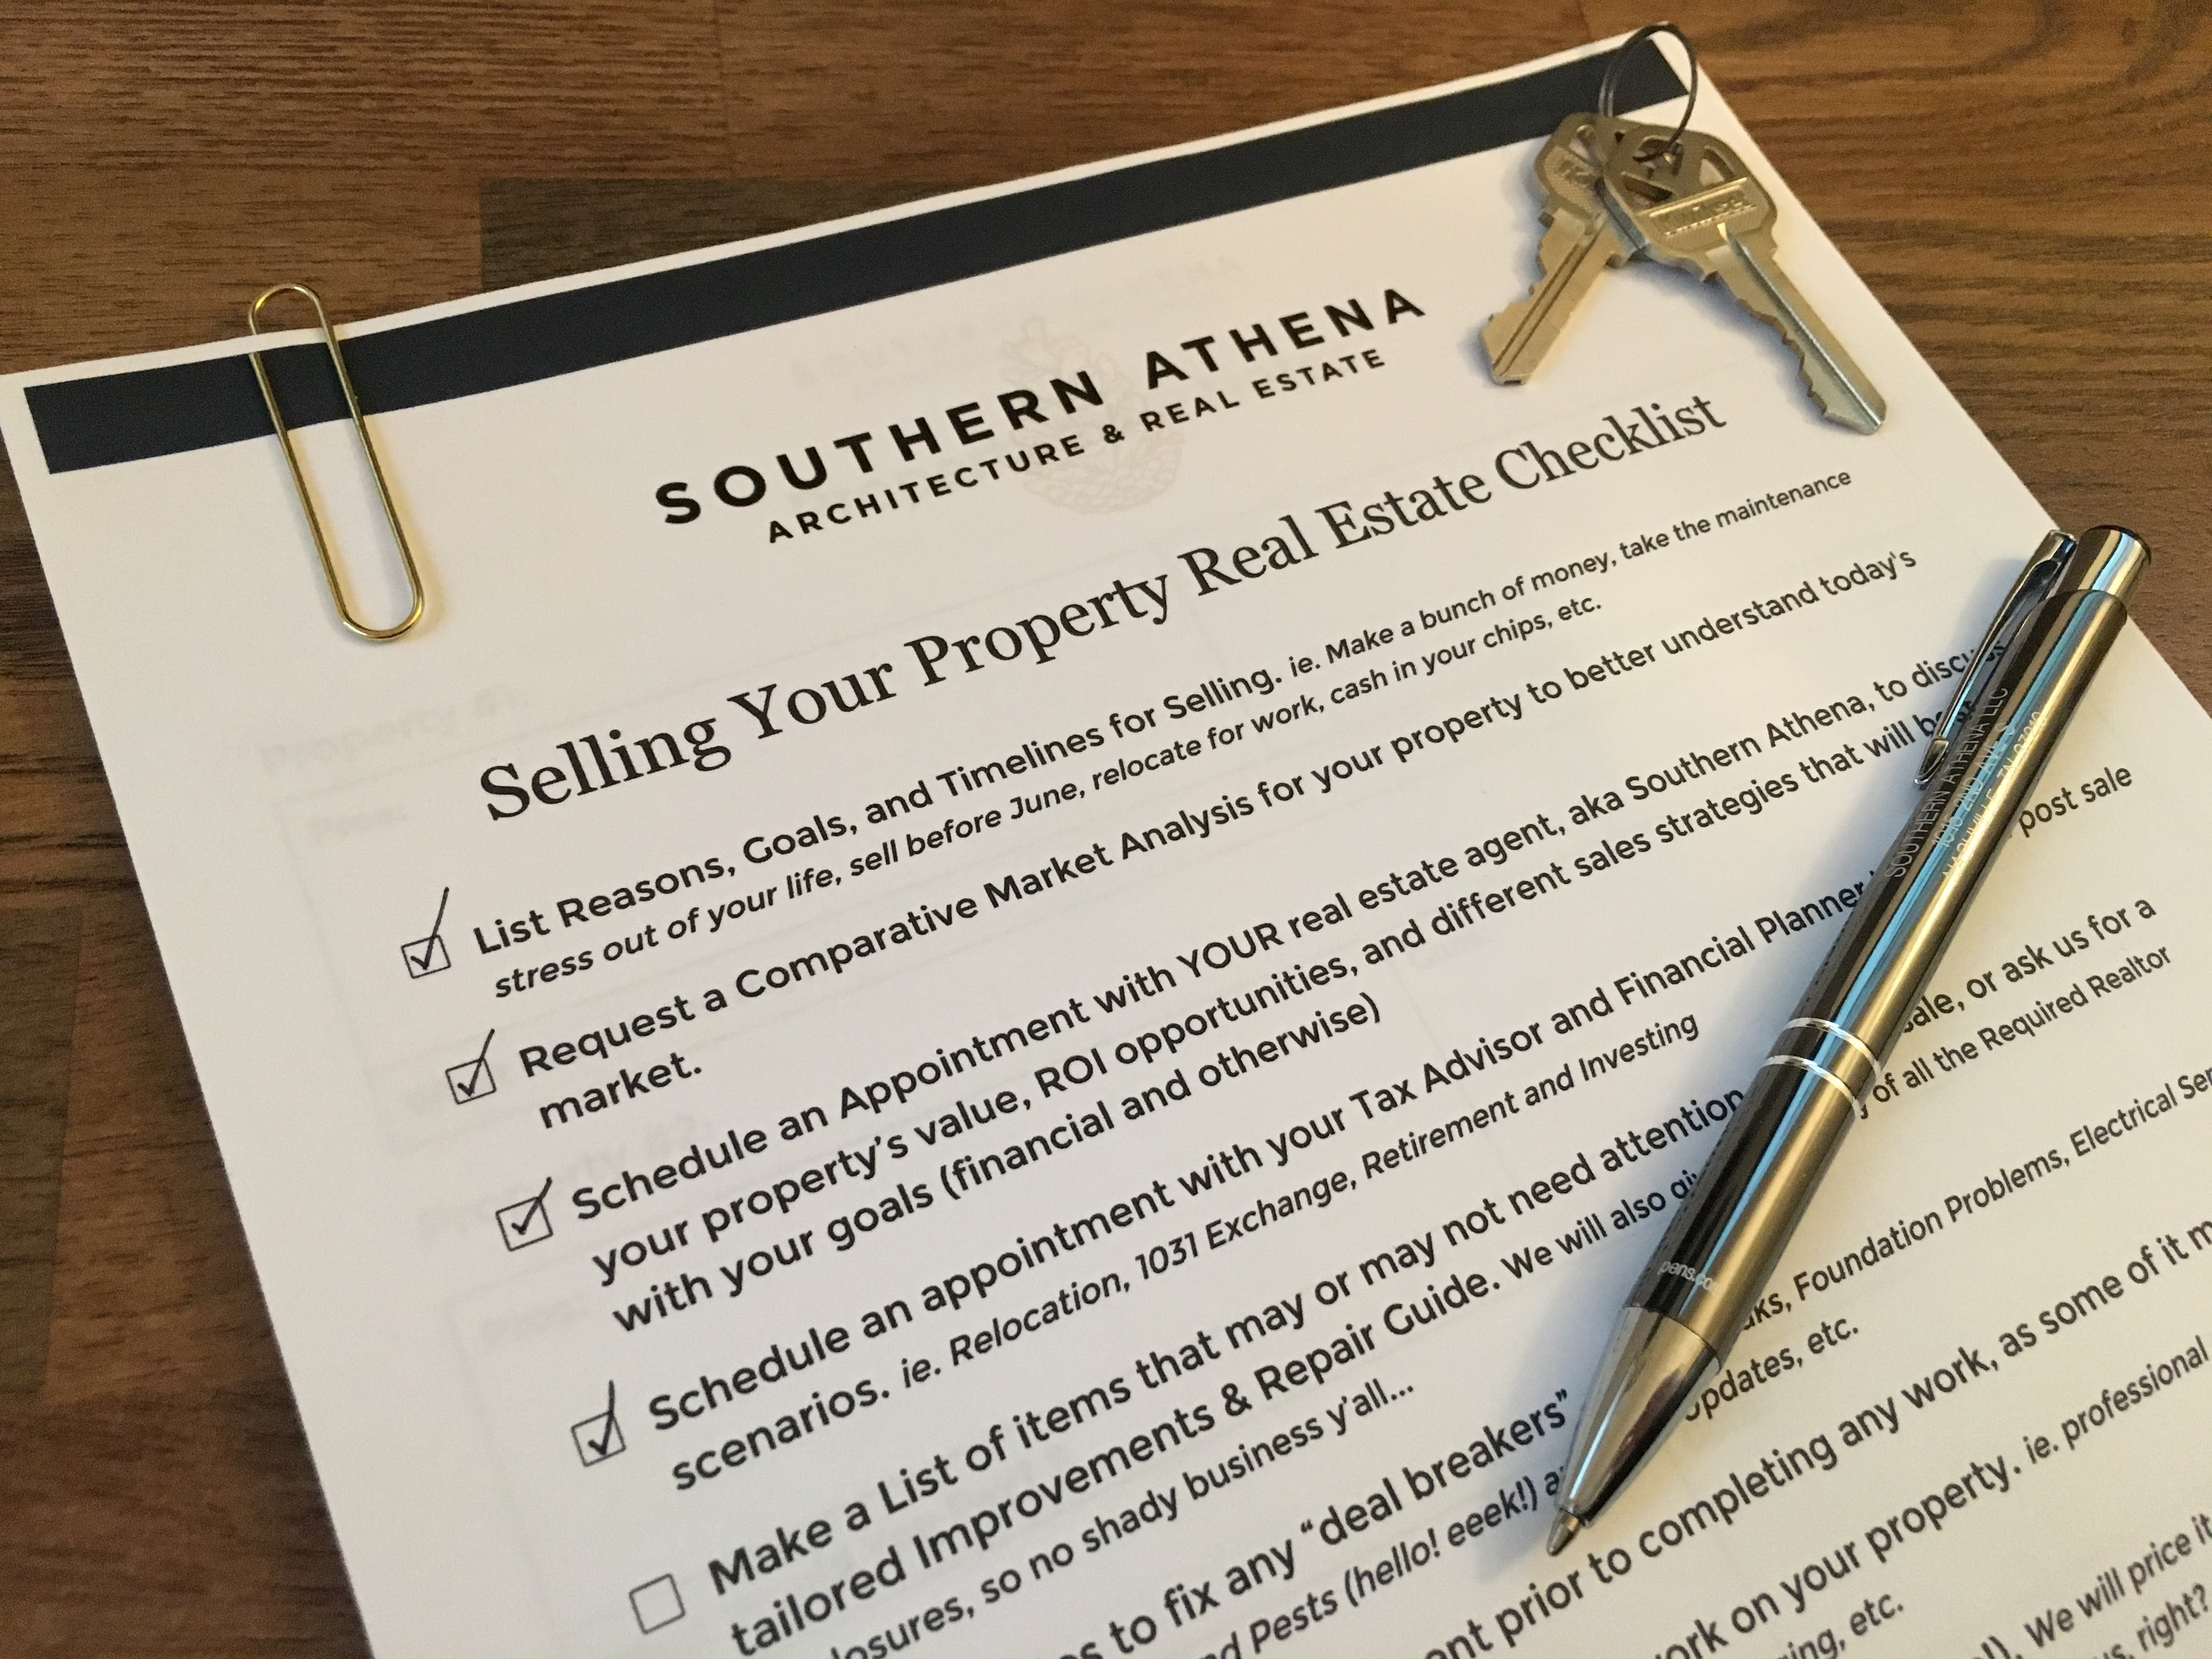 Selling your house checklist - Selling Your Property Doesn T Have To Be Full Of Hassle And Stress You Can Do It With Ease By Following These Simple Steps For Success